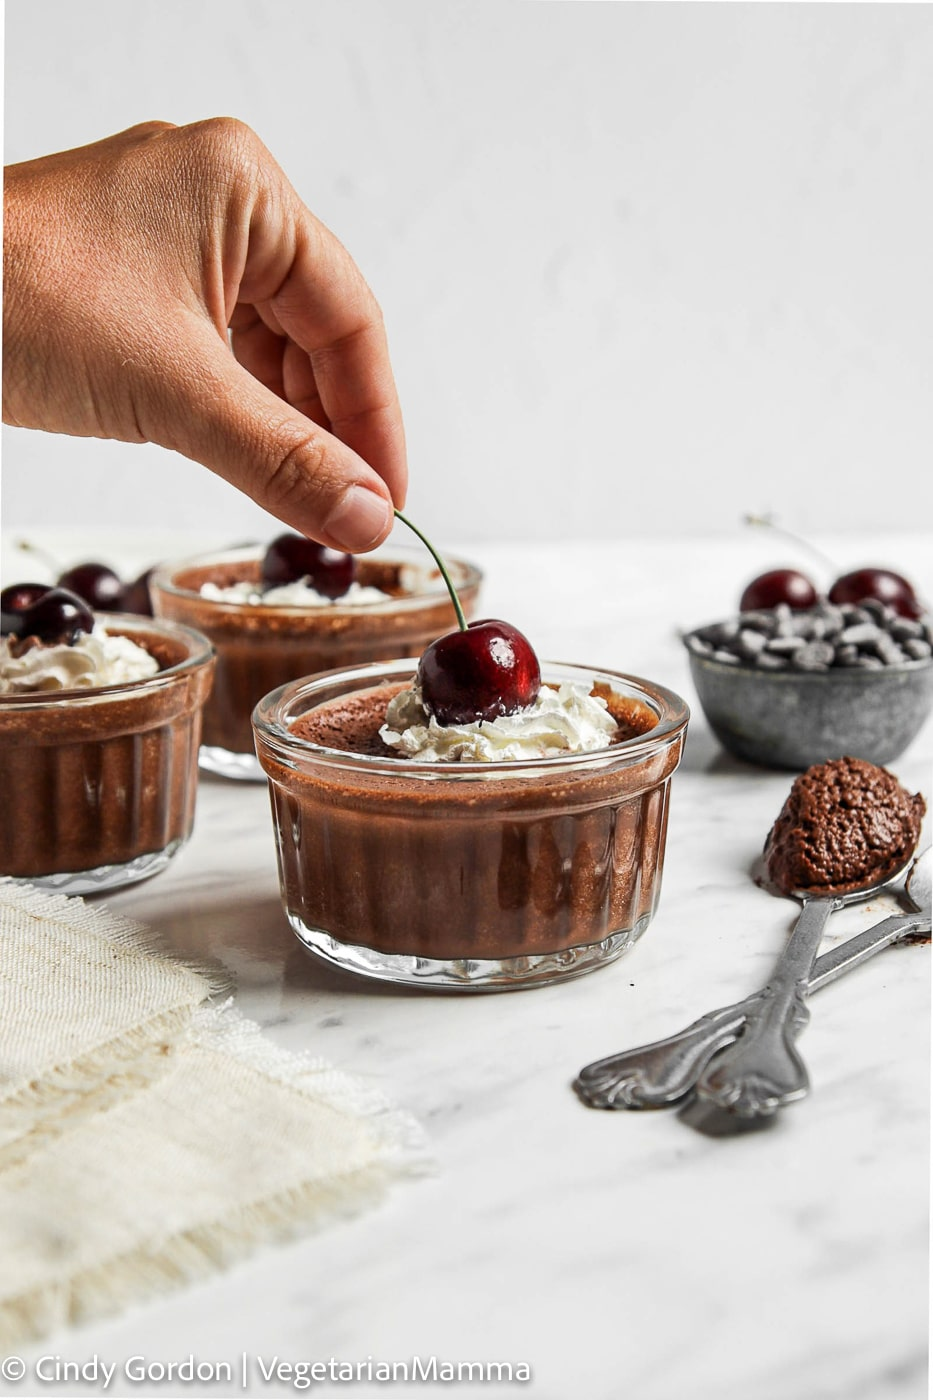 a hand placing a fresh dark cherry on top of a glass dish of vegan chocolate mousse